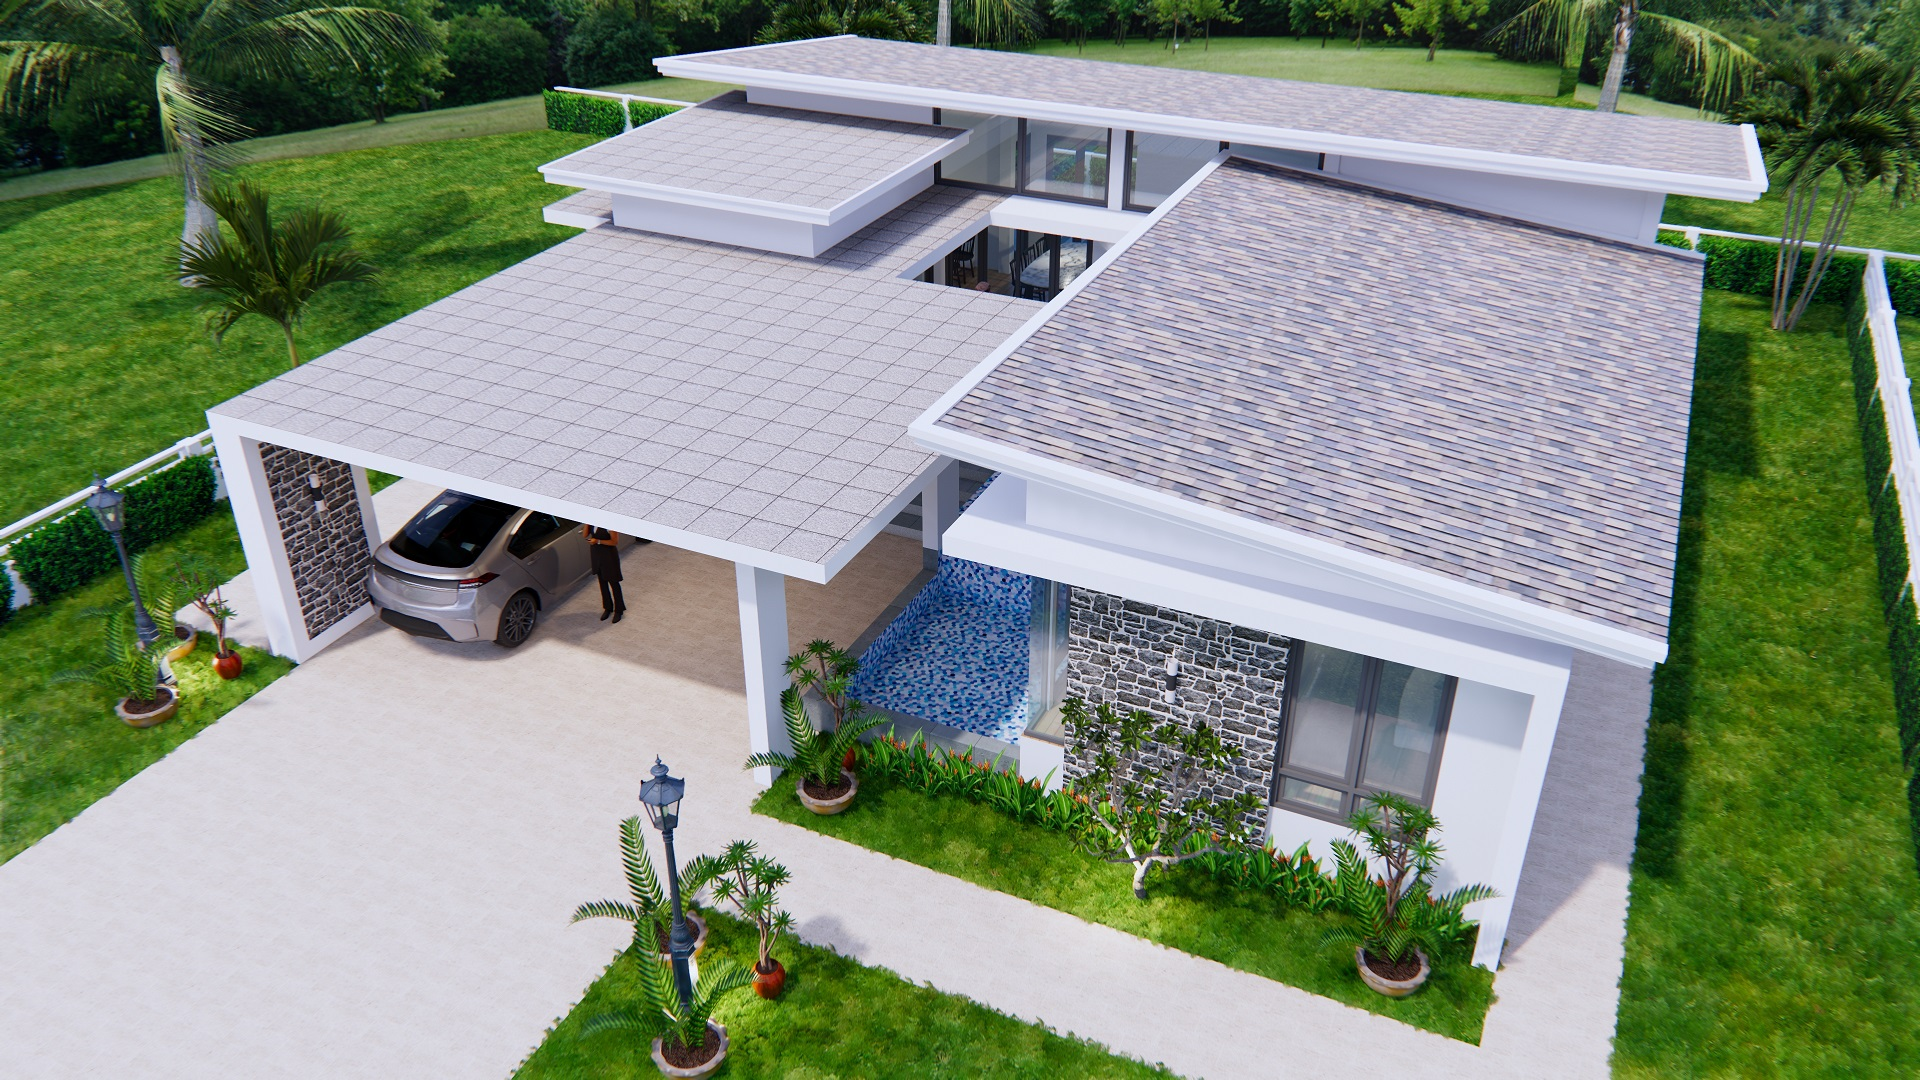 House Design with Pool 14x14 Meter 46x46 Feet 3 Beds 4